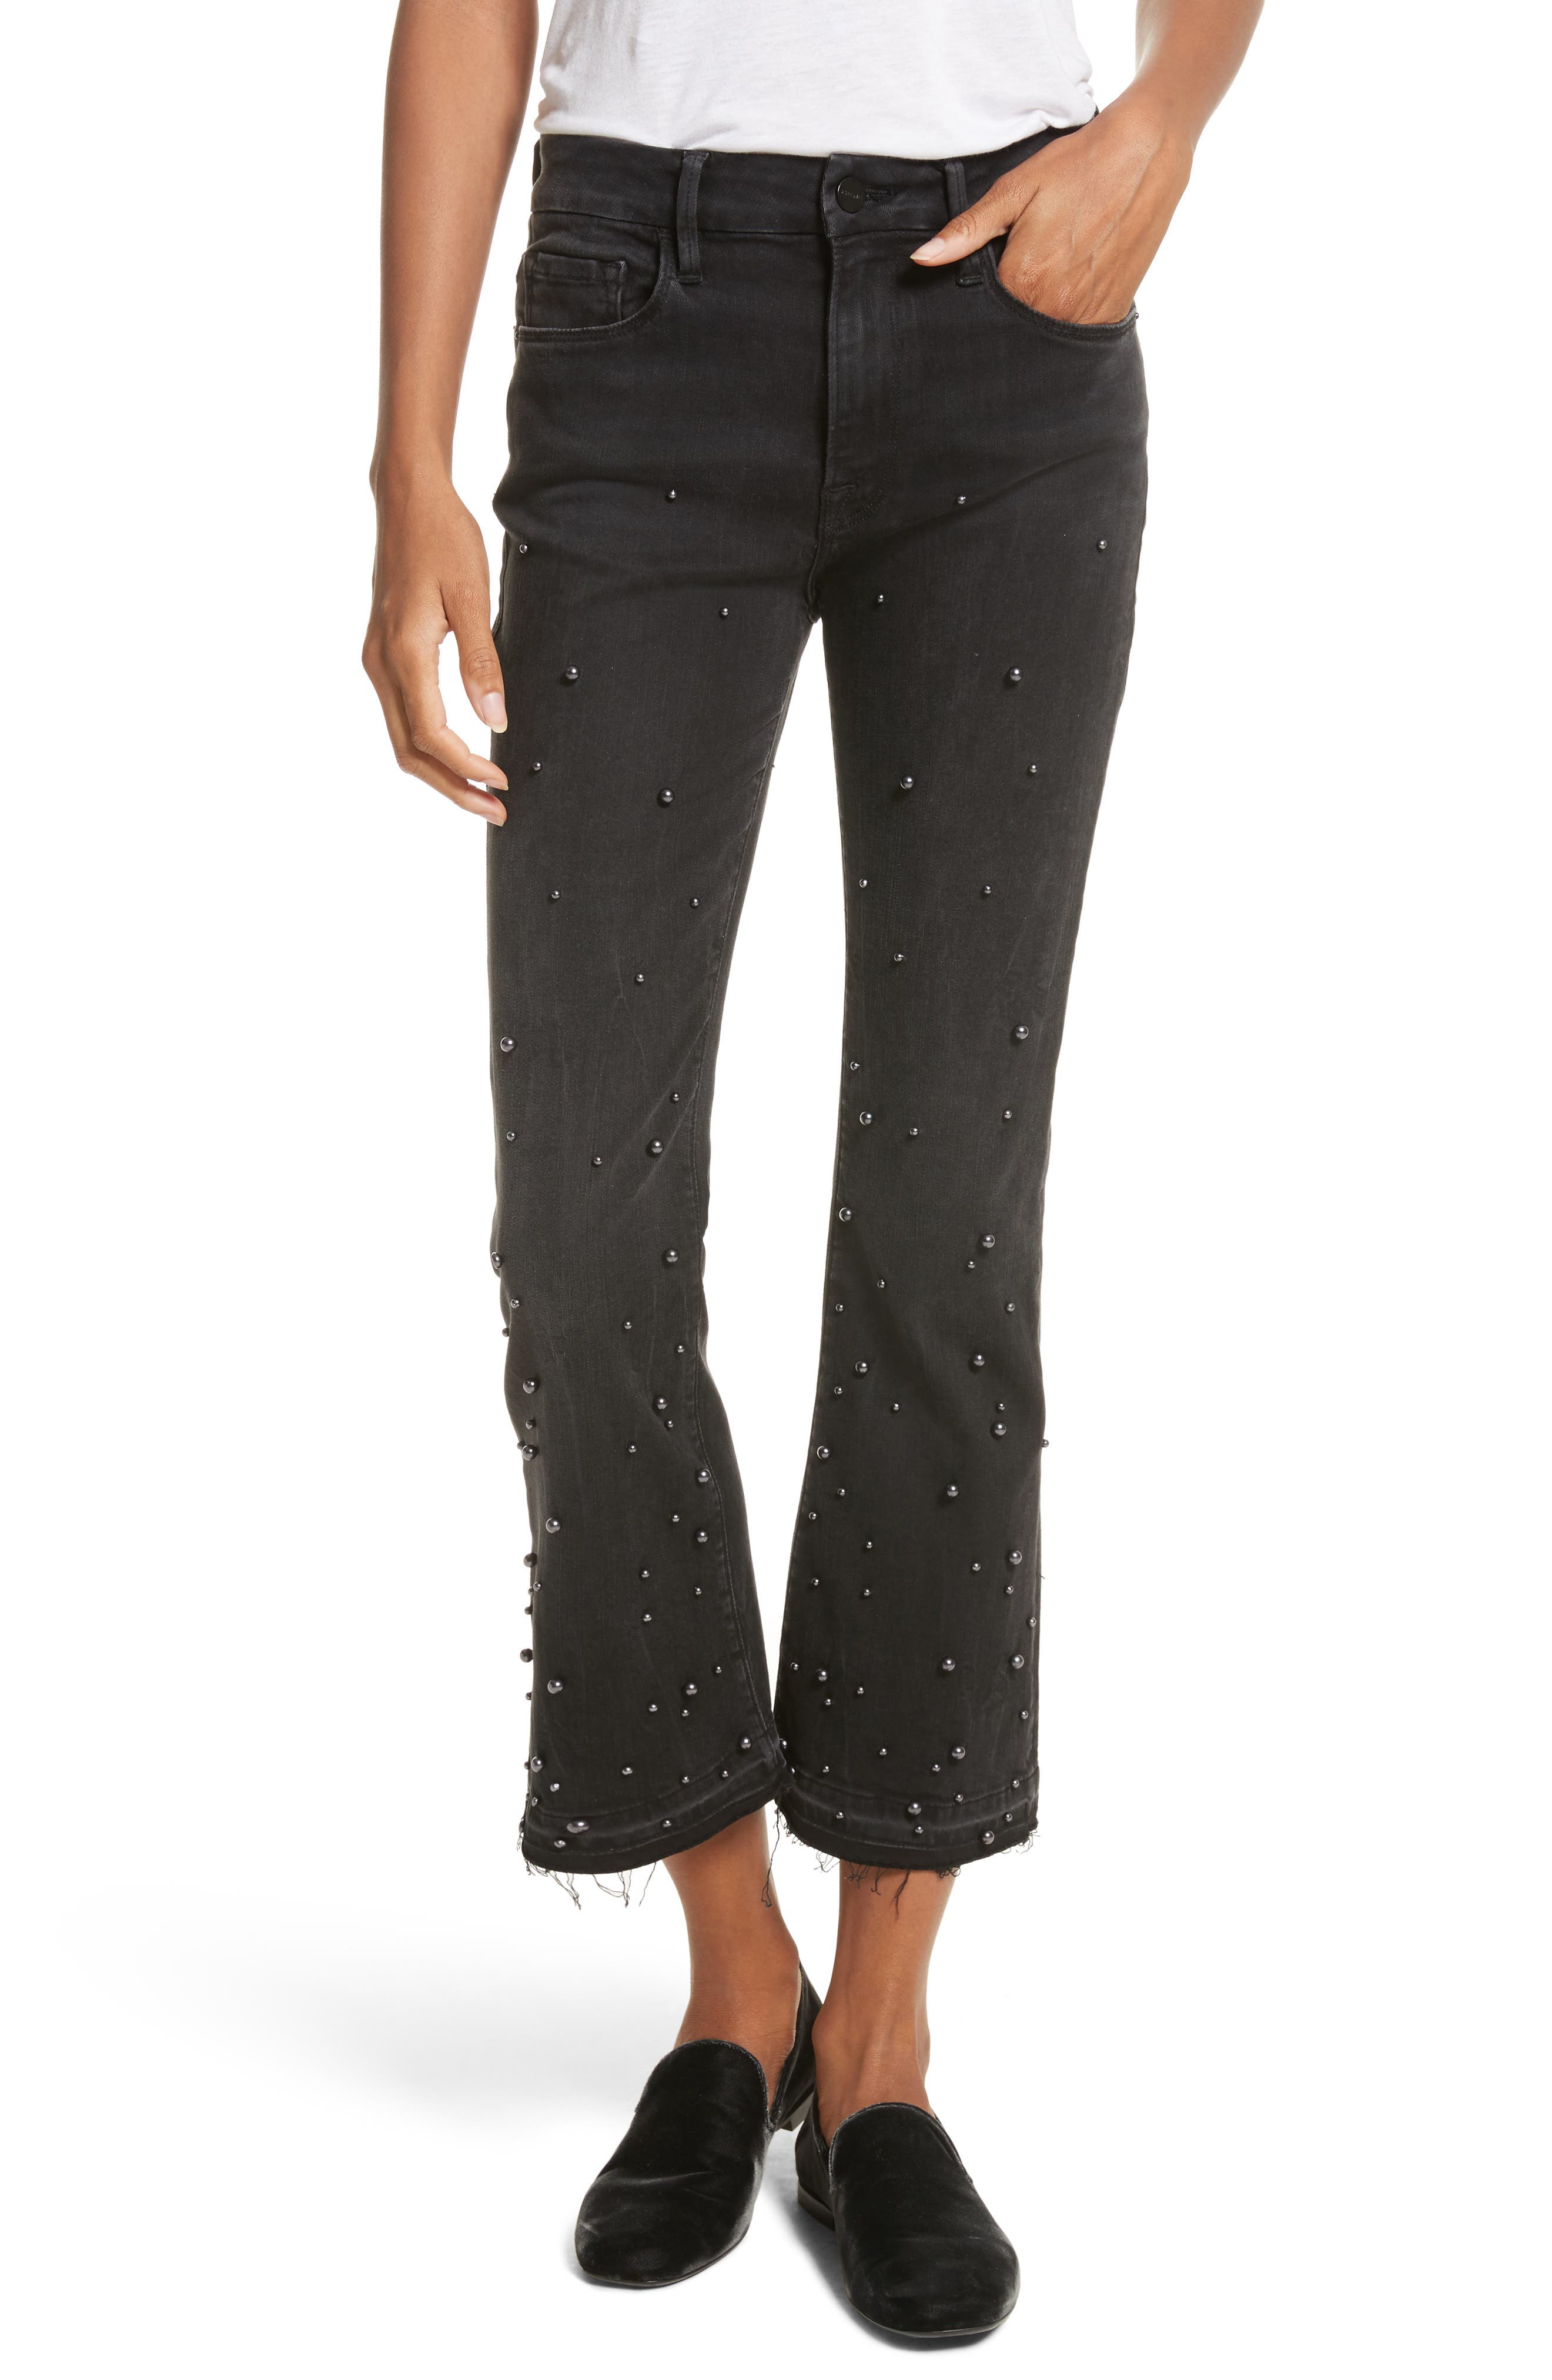 Alternate Image 1 Selected - FRAME Raw Edge High Rise Embellished Crop Jeans (Mott Street)